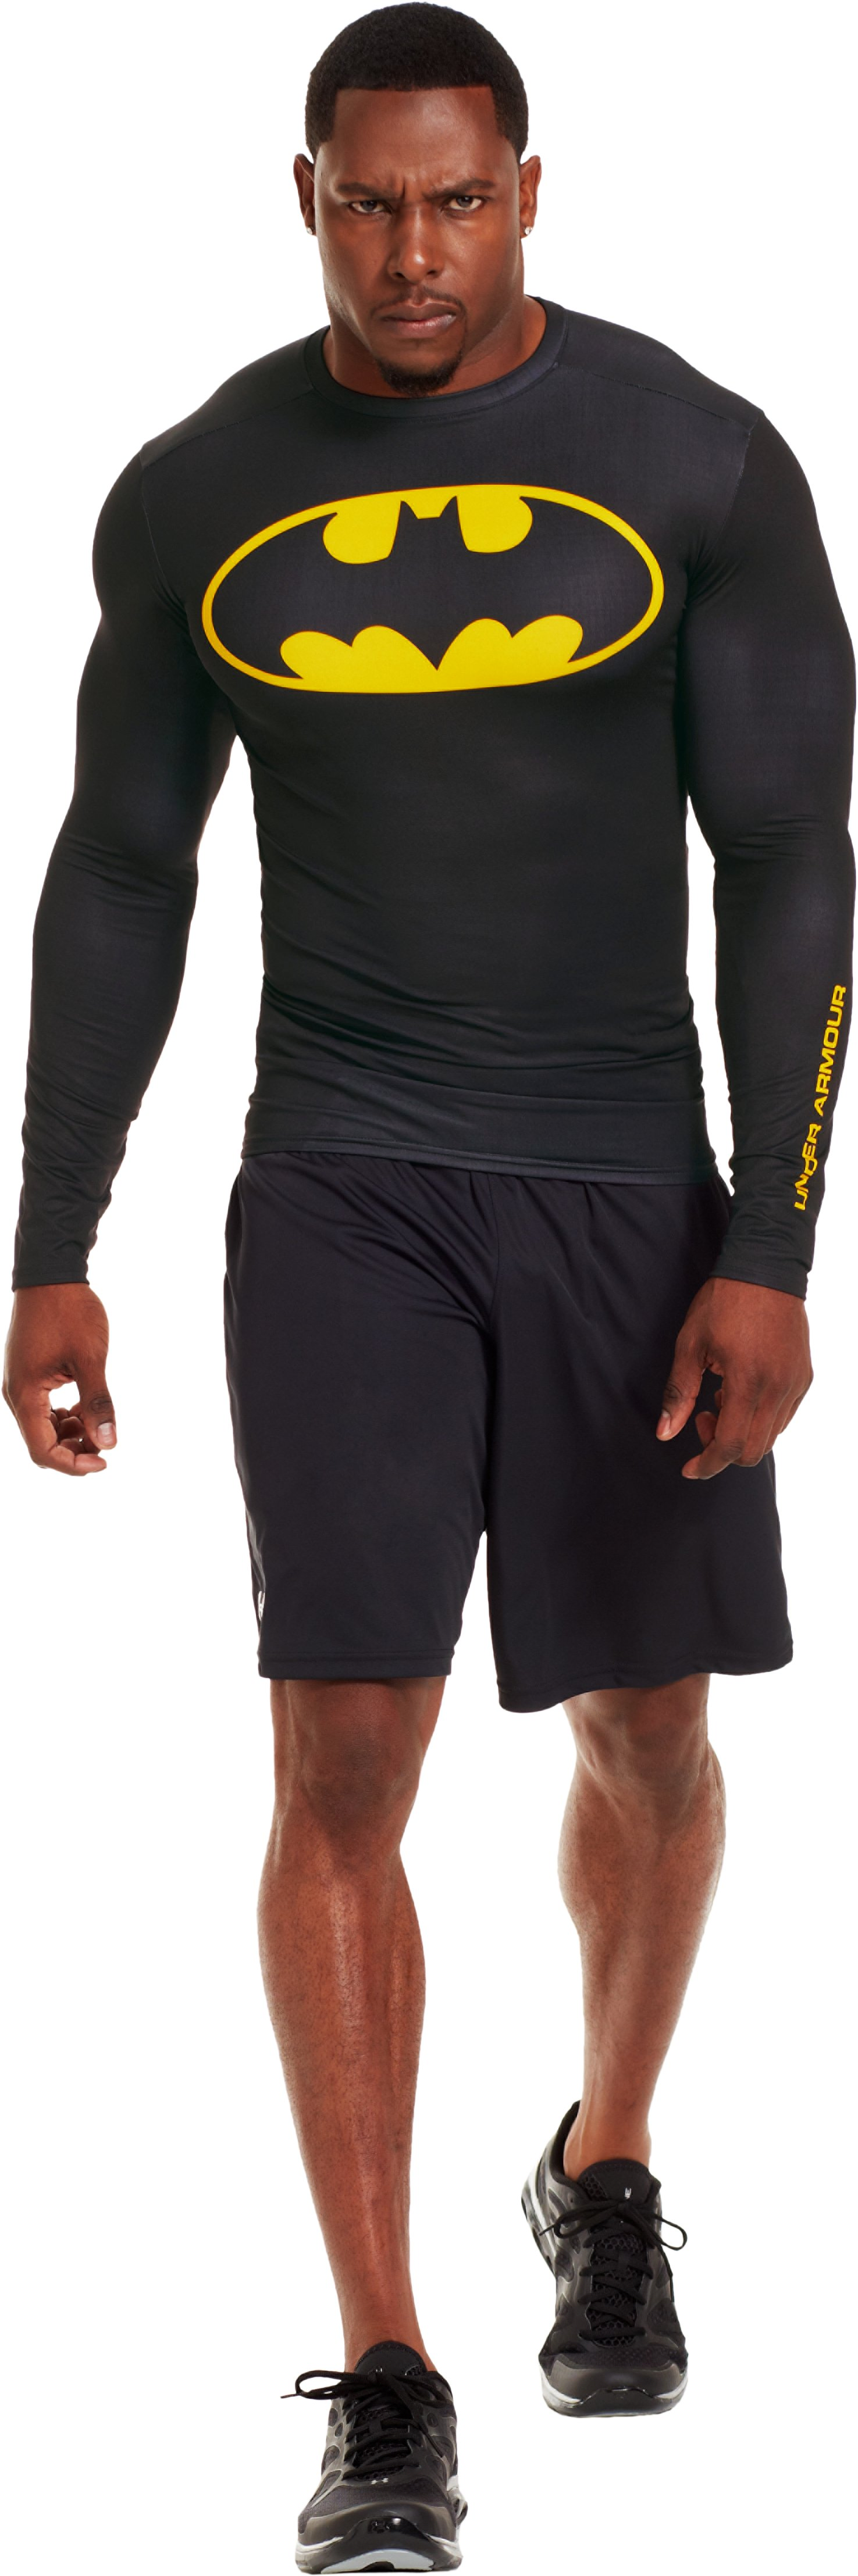 Men's Under Armour® Alter Ego Compression Long Sleeve Shirt, Black